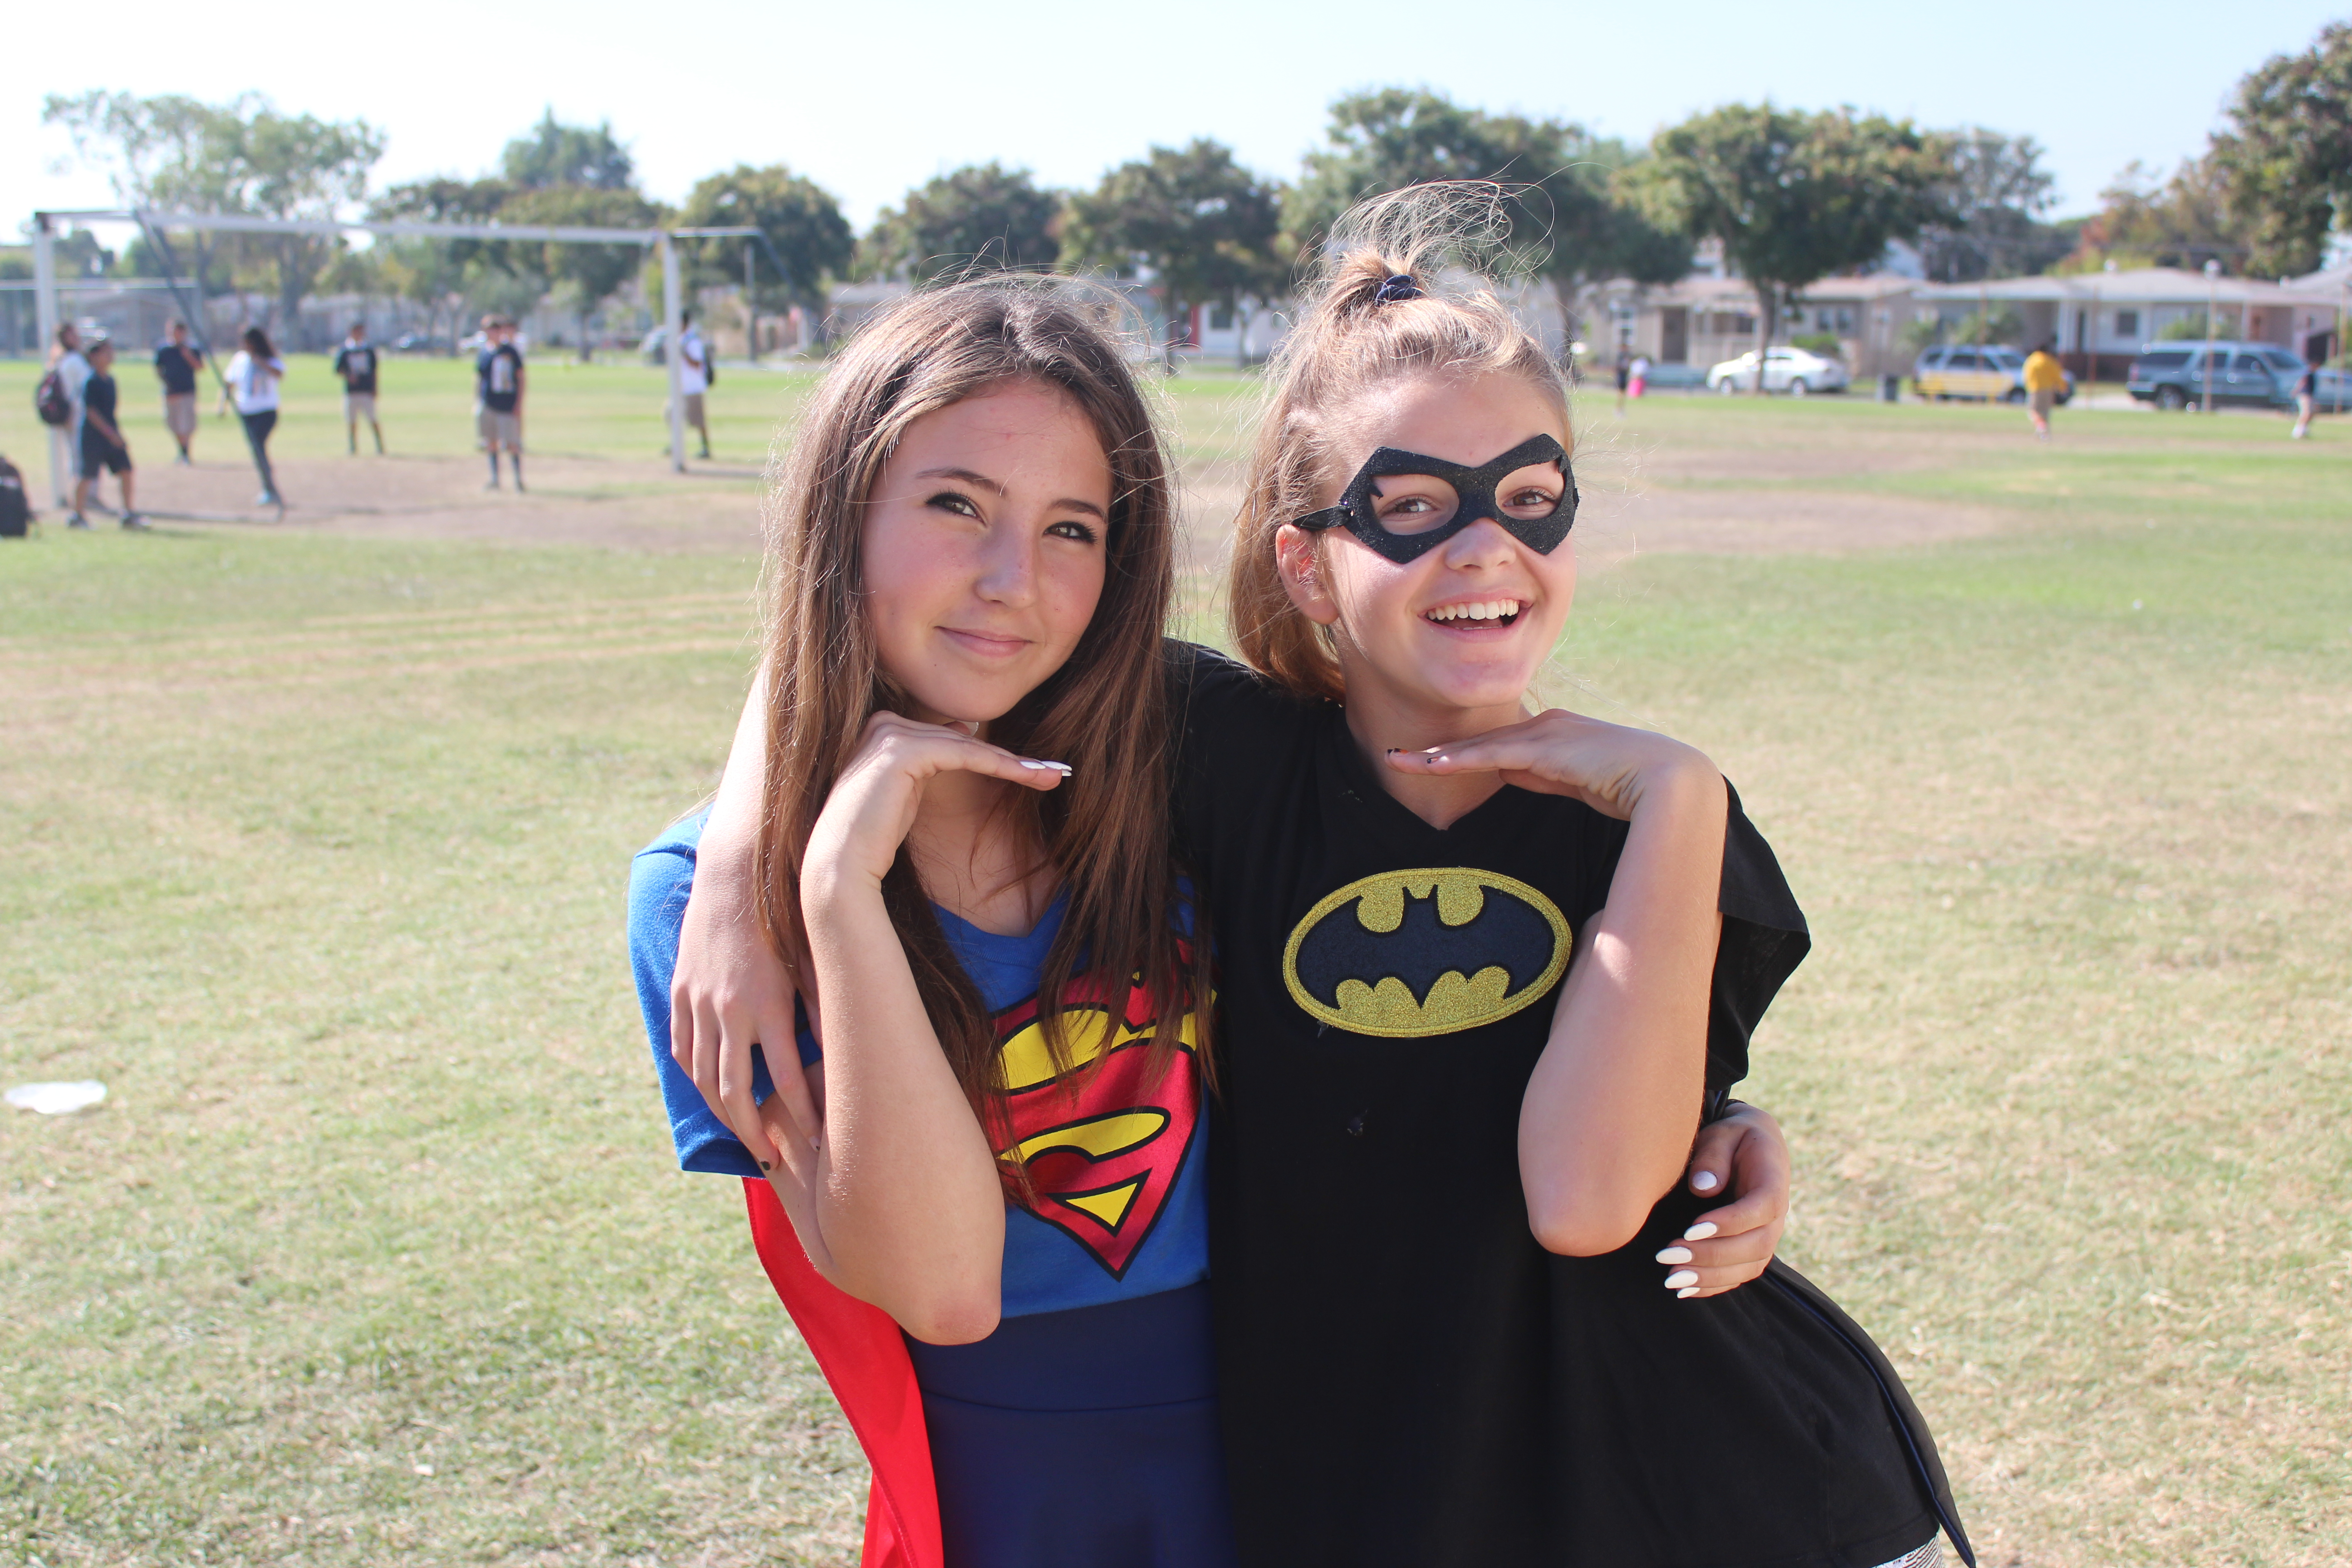 Students in superhero costumes